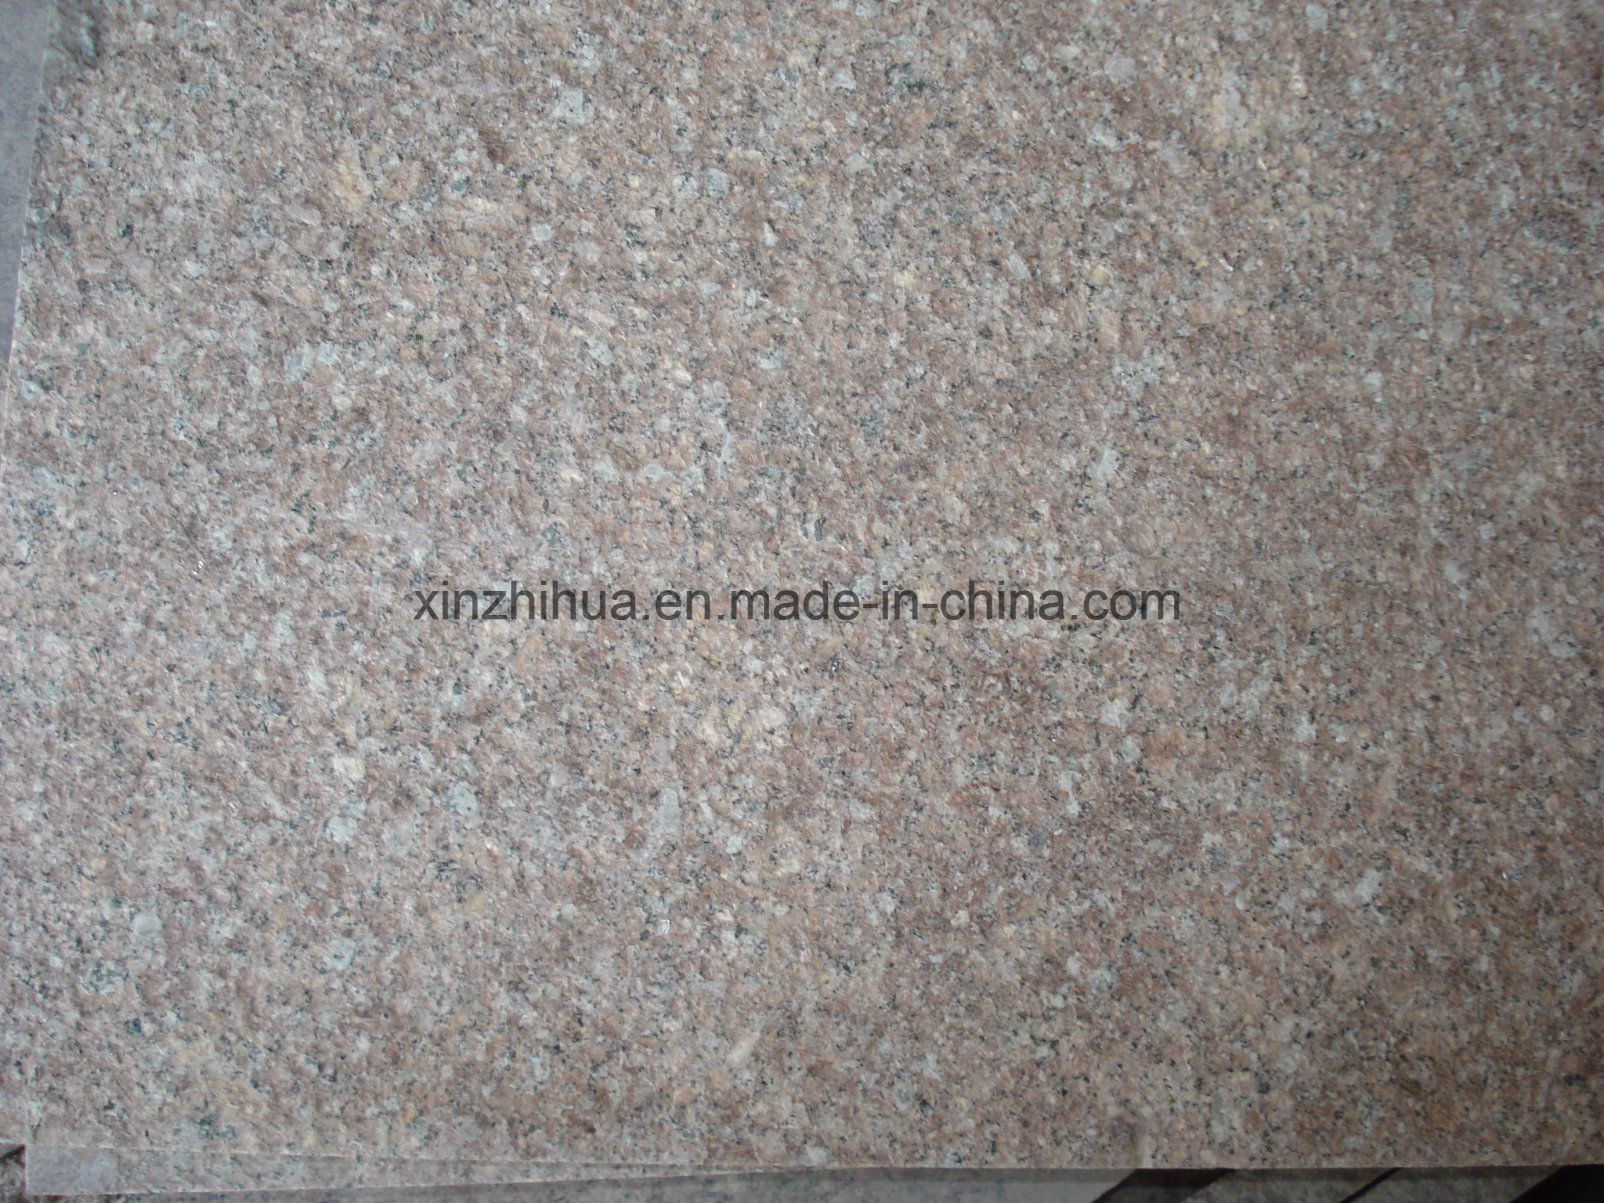 G611 Granite for Tiles/Stair Steps pictures & photos